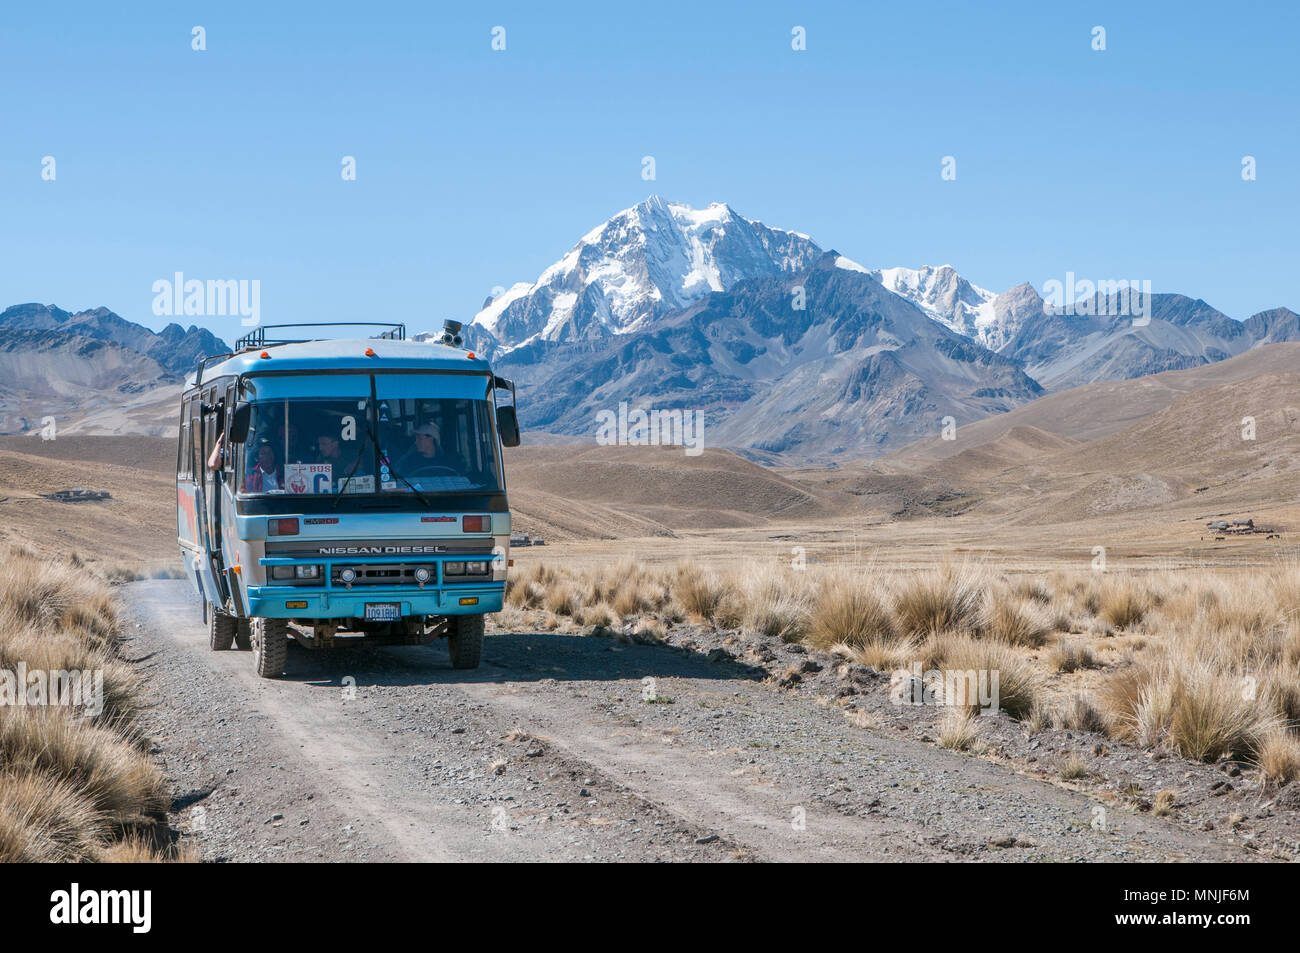 A local bus transporting hikers in the Cordillera Real region of the Bolivian Andes. - Stock Image